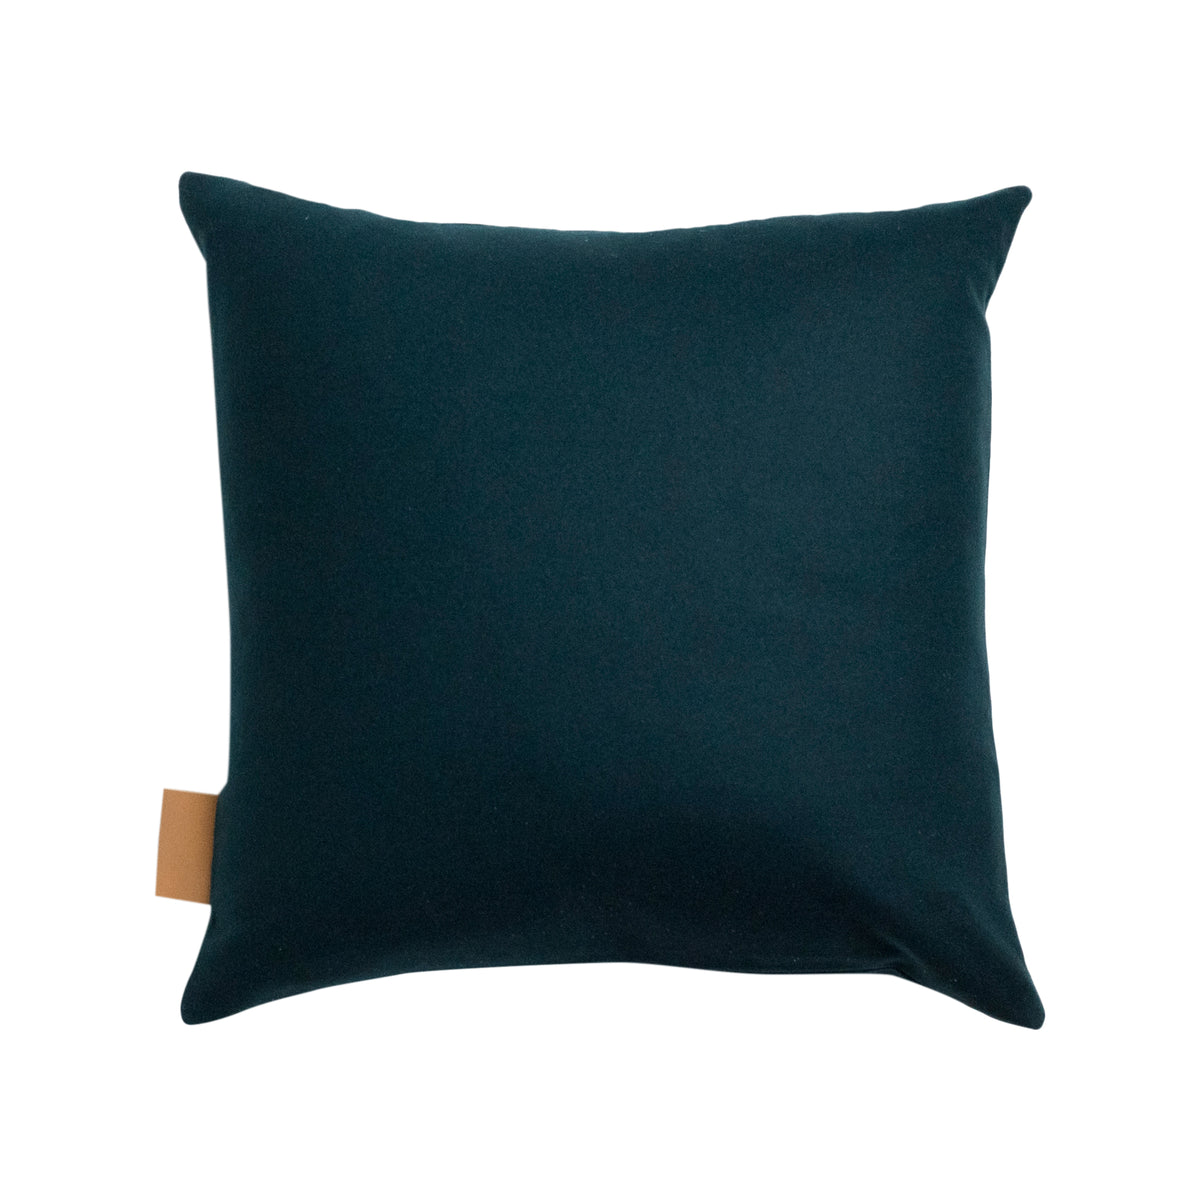 Frankie Cushion Square - Forest Green